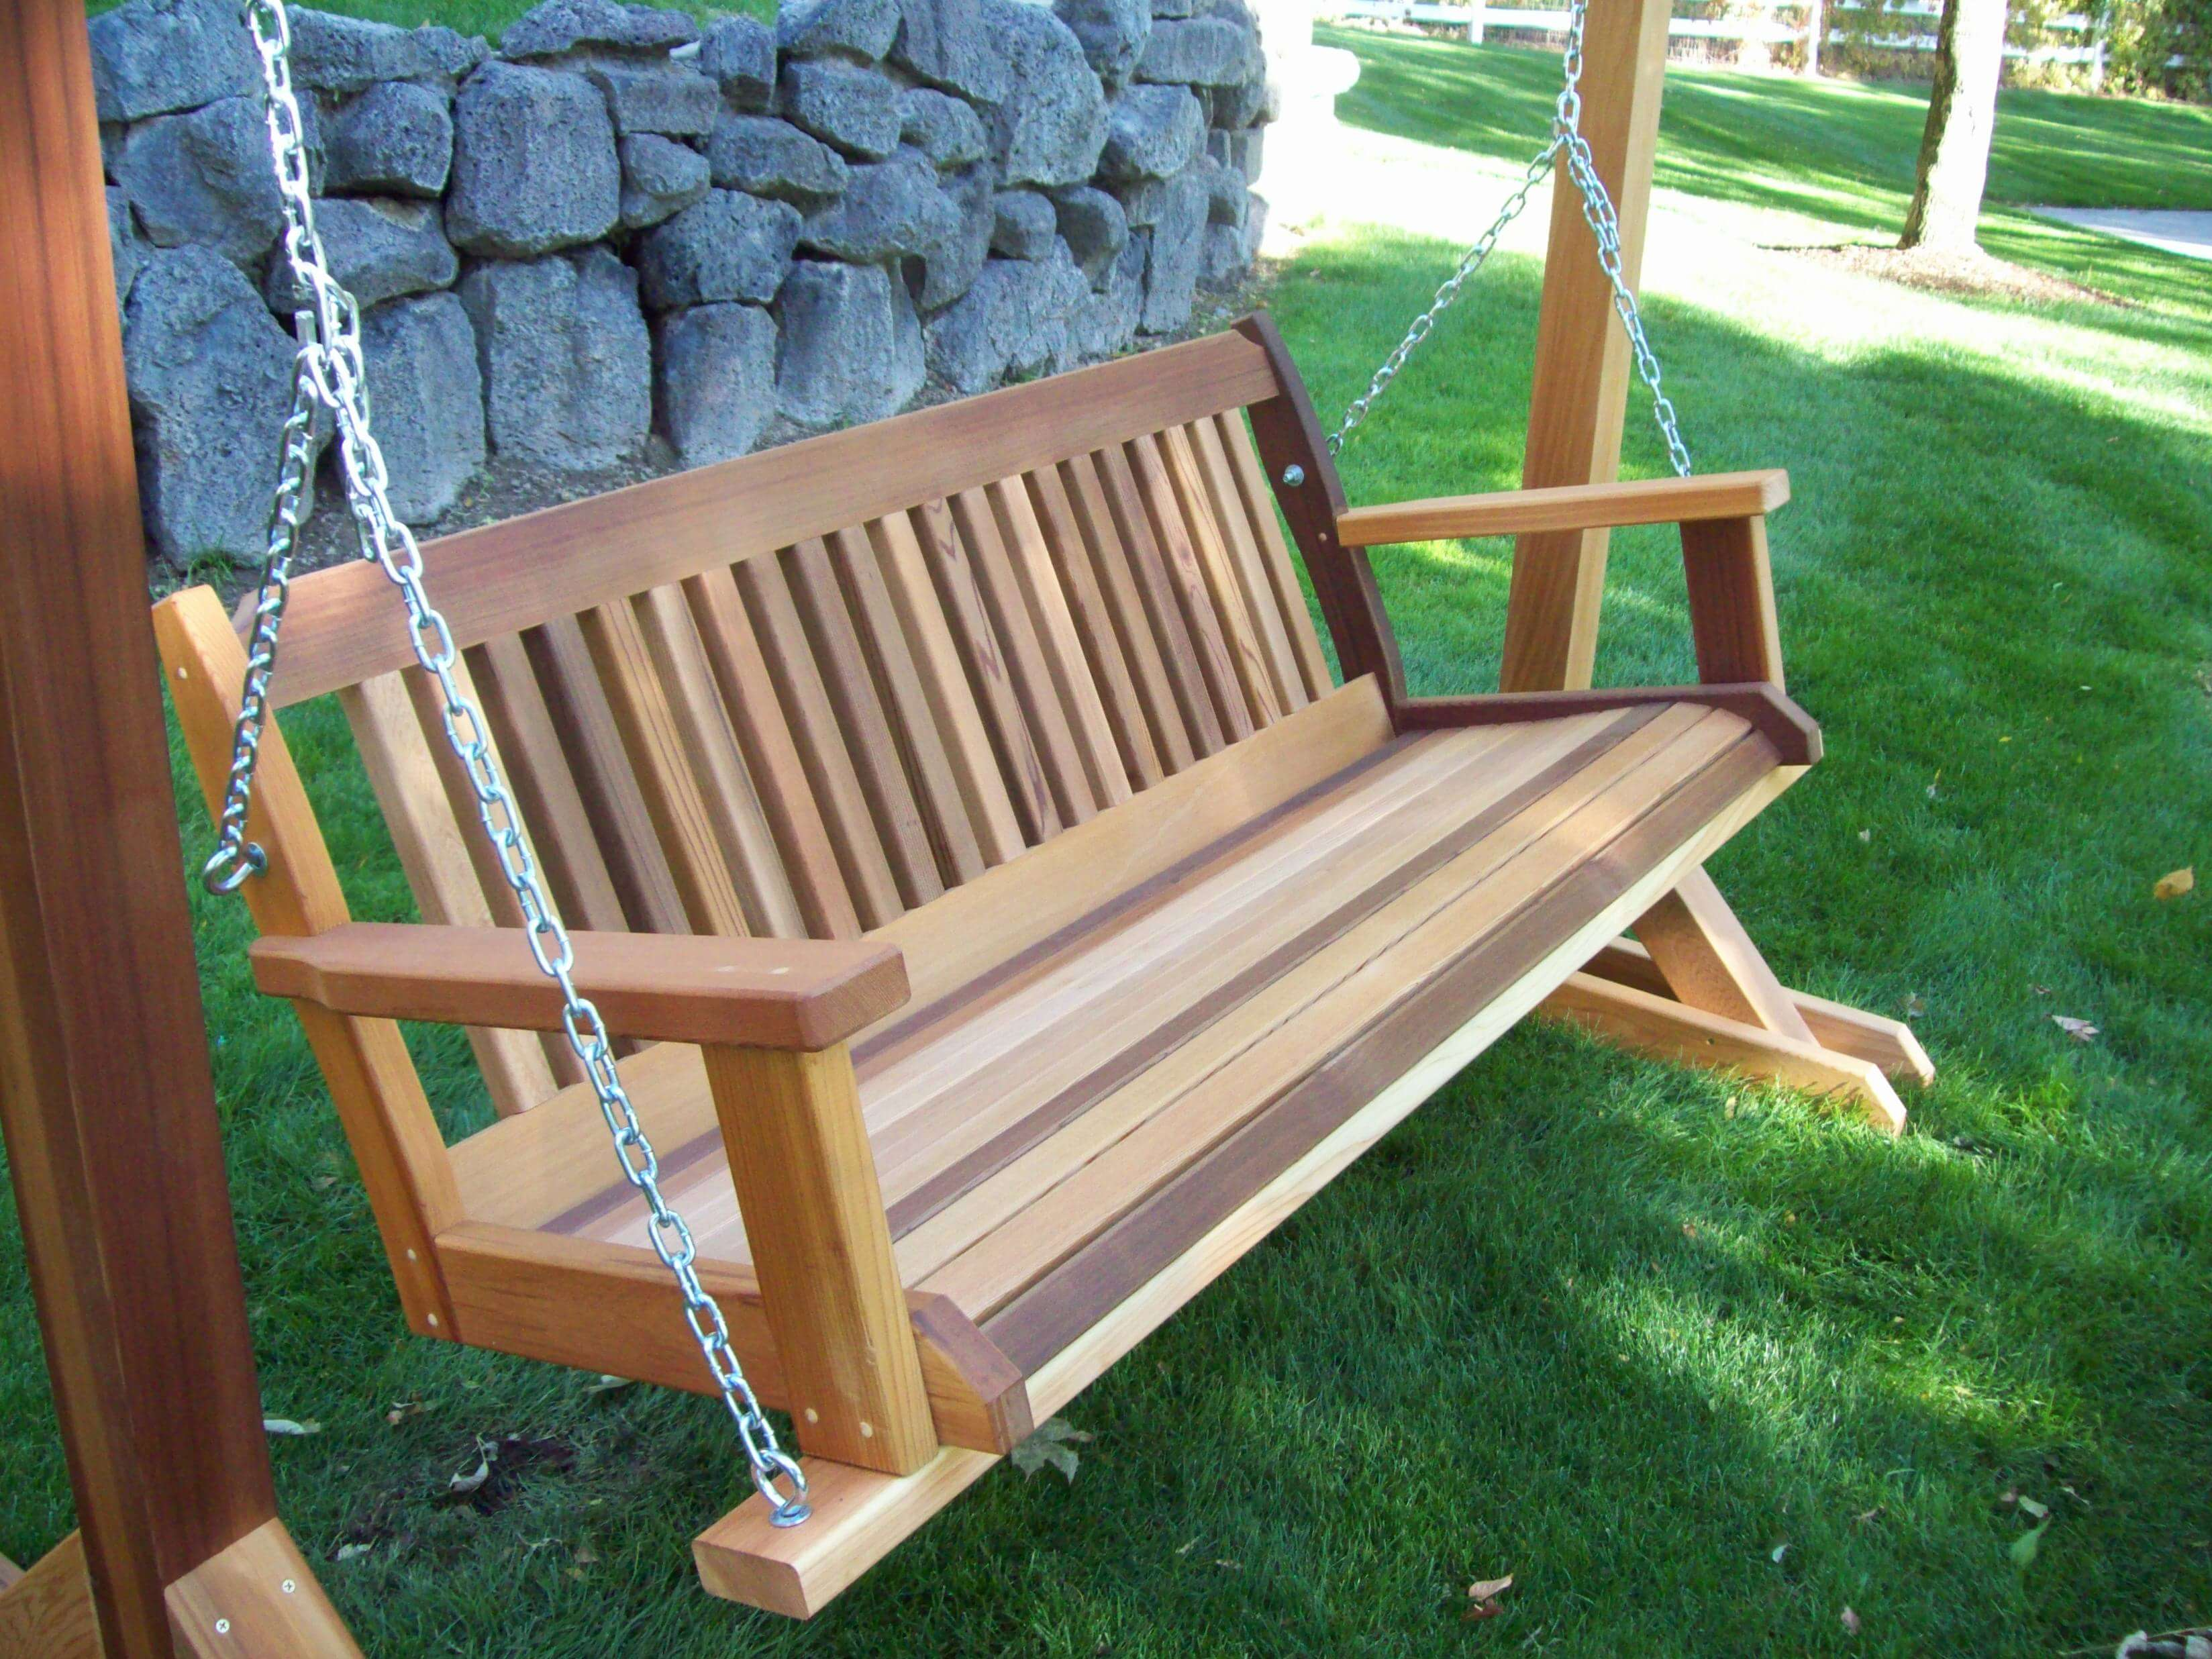 Swing set Installer Nj, Cedar Summit Canyon Ridge t from Costco swing set installation in, Highlander cedar swing set,, swingset assembly Nj, Costco cedar Summit swing set installer NJ, big backyard swingsets, toysrus swing sets, Oxford Wooden Swing set.